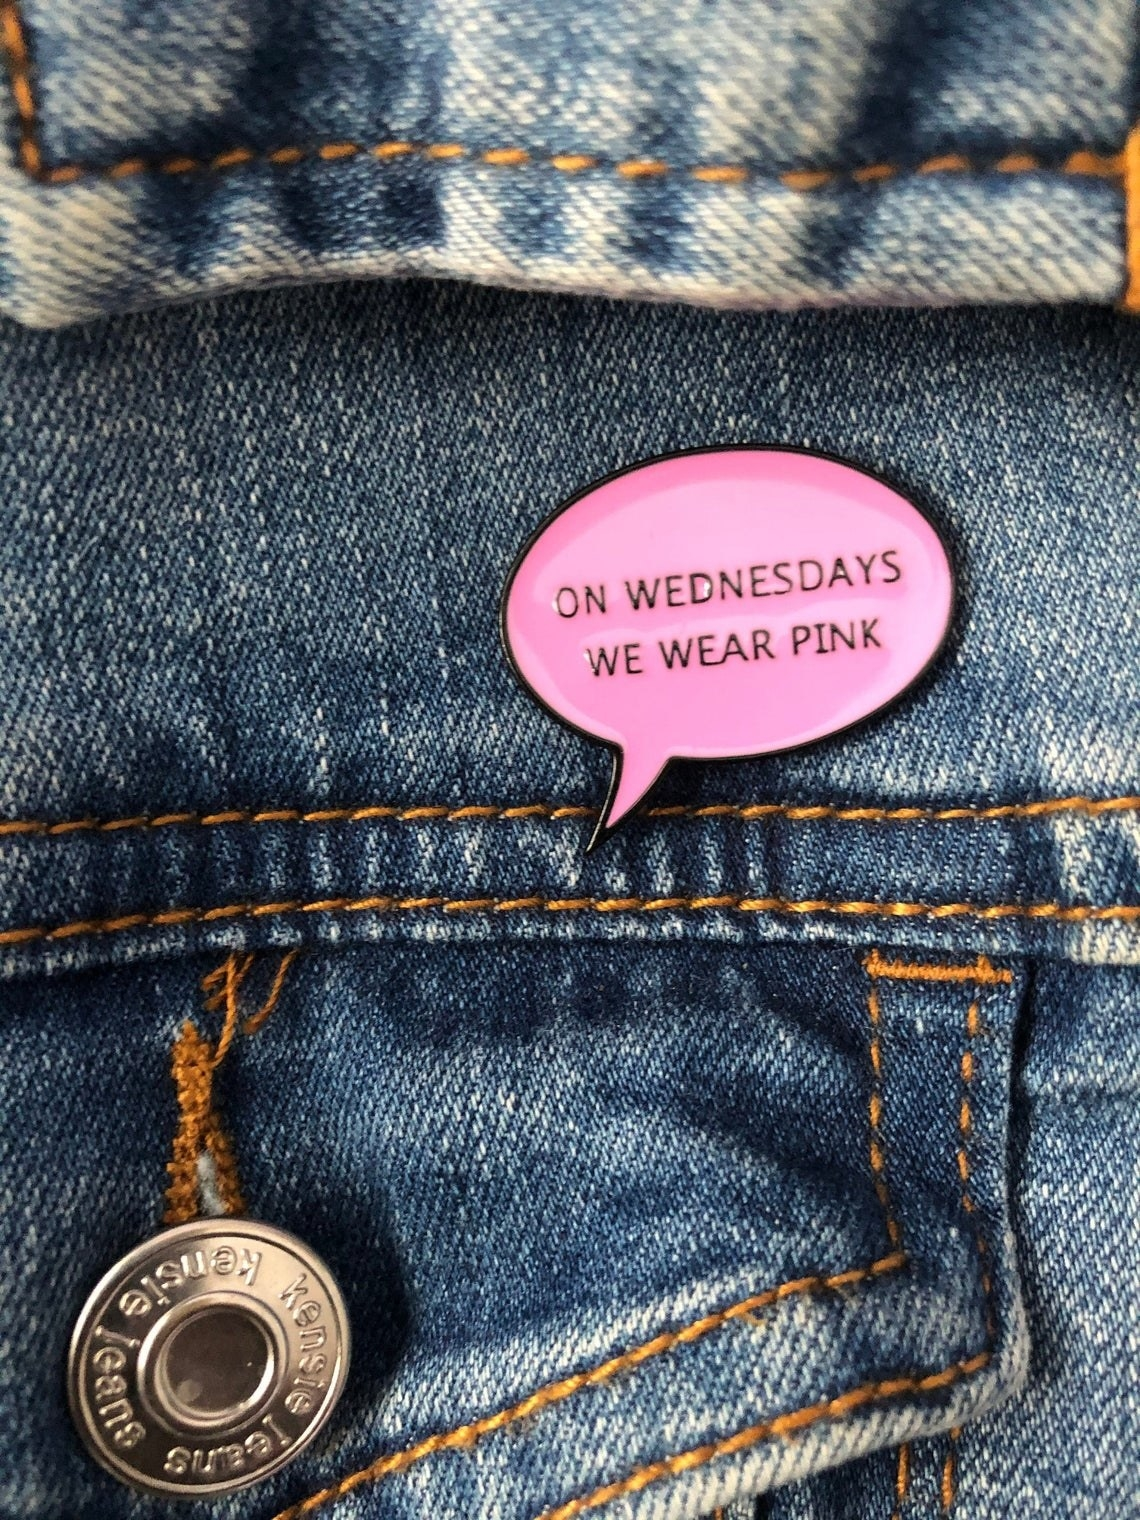 A small pin on a jean jacket that says on Wednesdays we wear pink